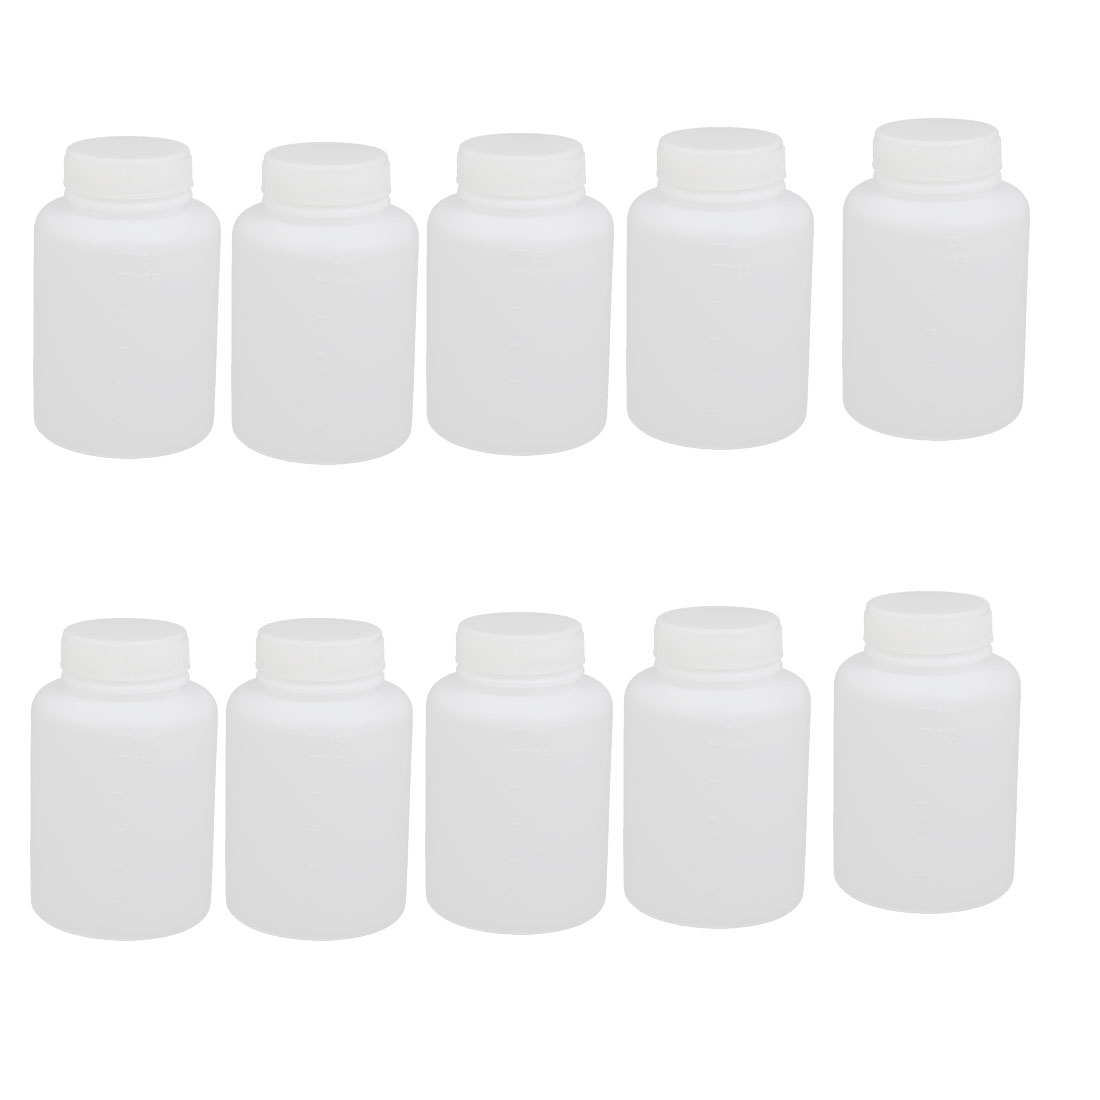 150ml 29mm Diameter PP Plastic Round Shaped Narrow Mouth Bottle Clear 10pcs